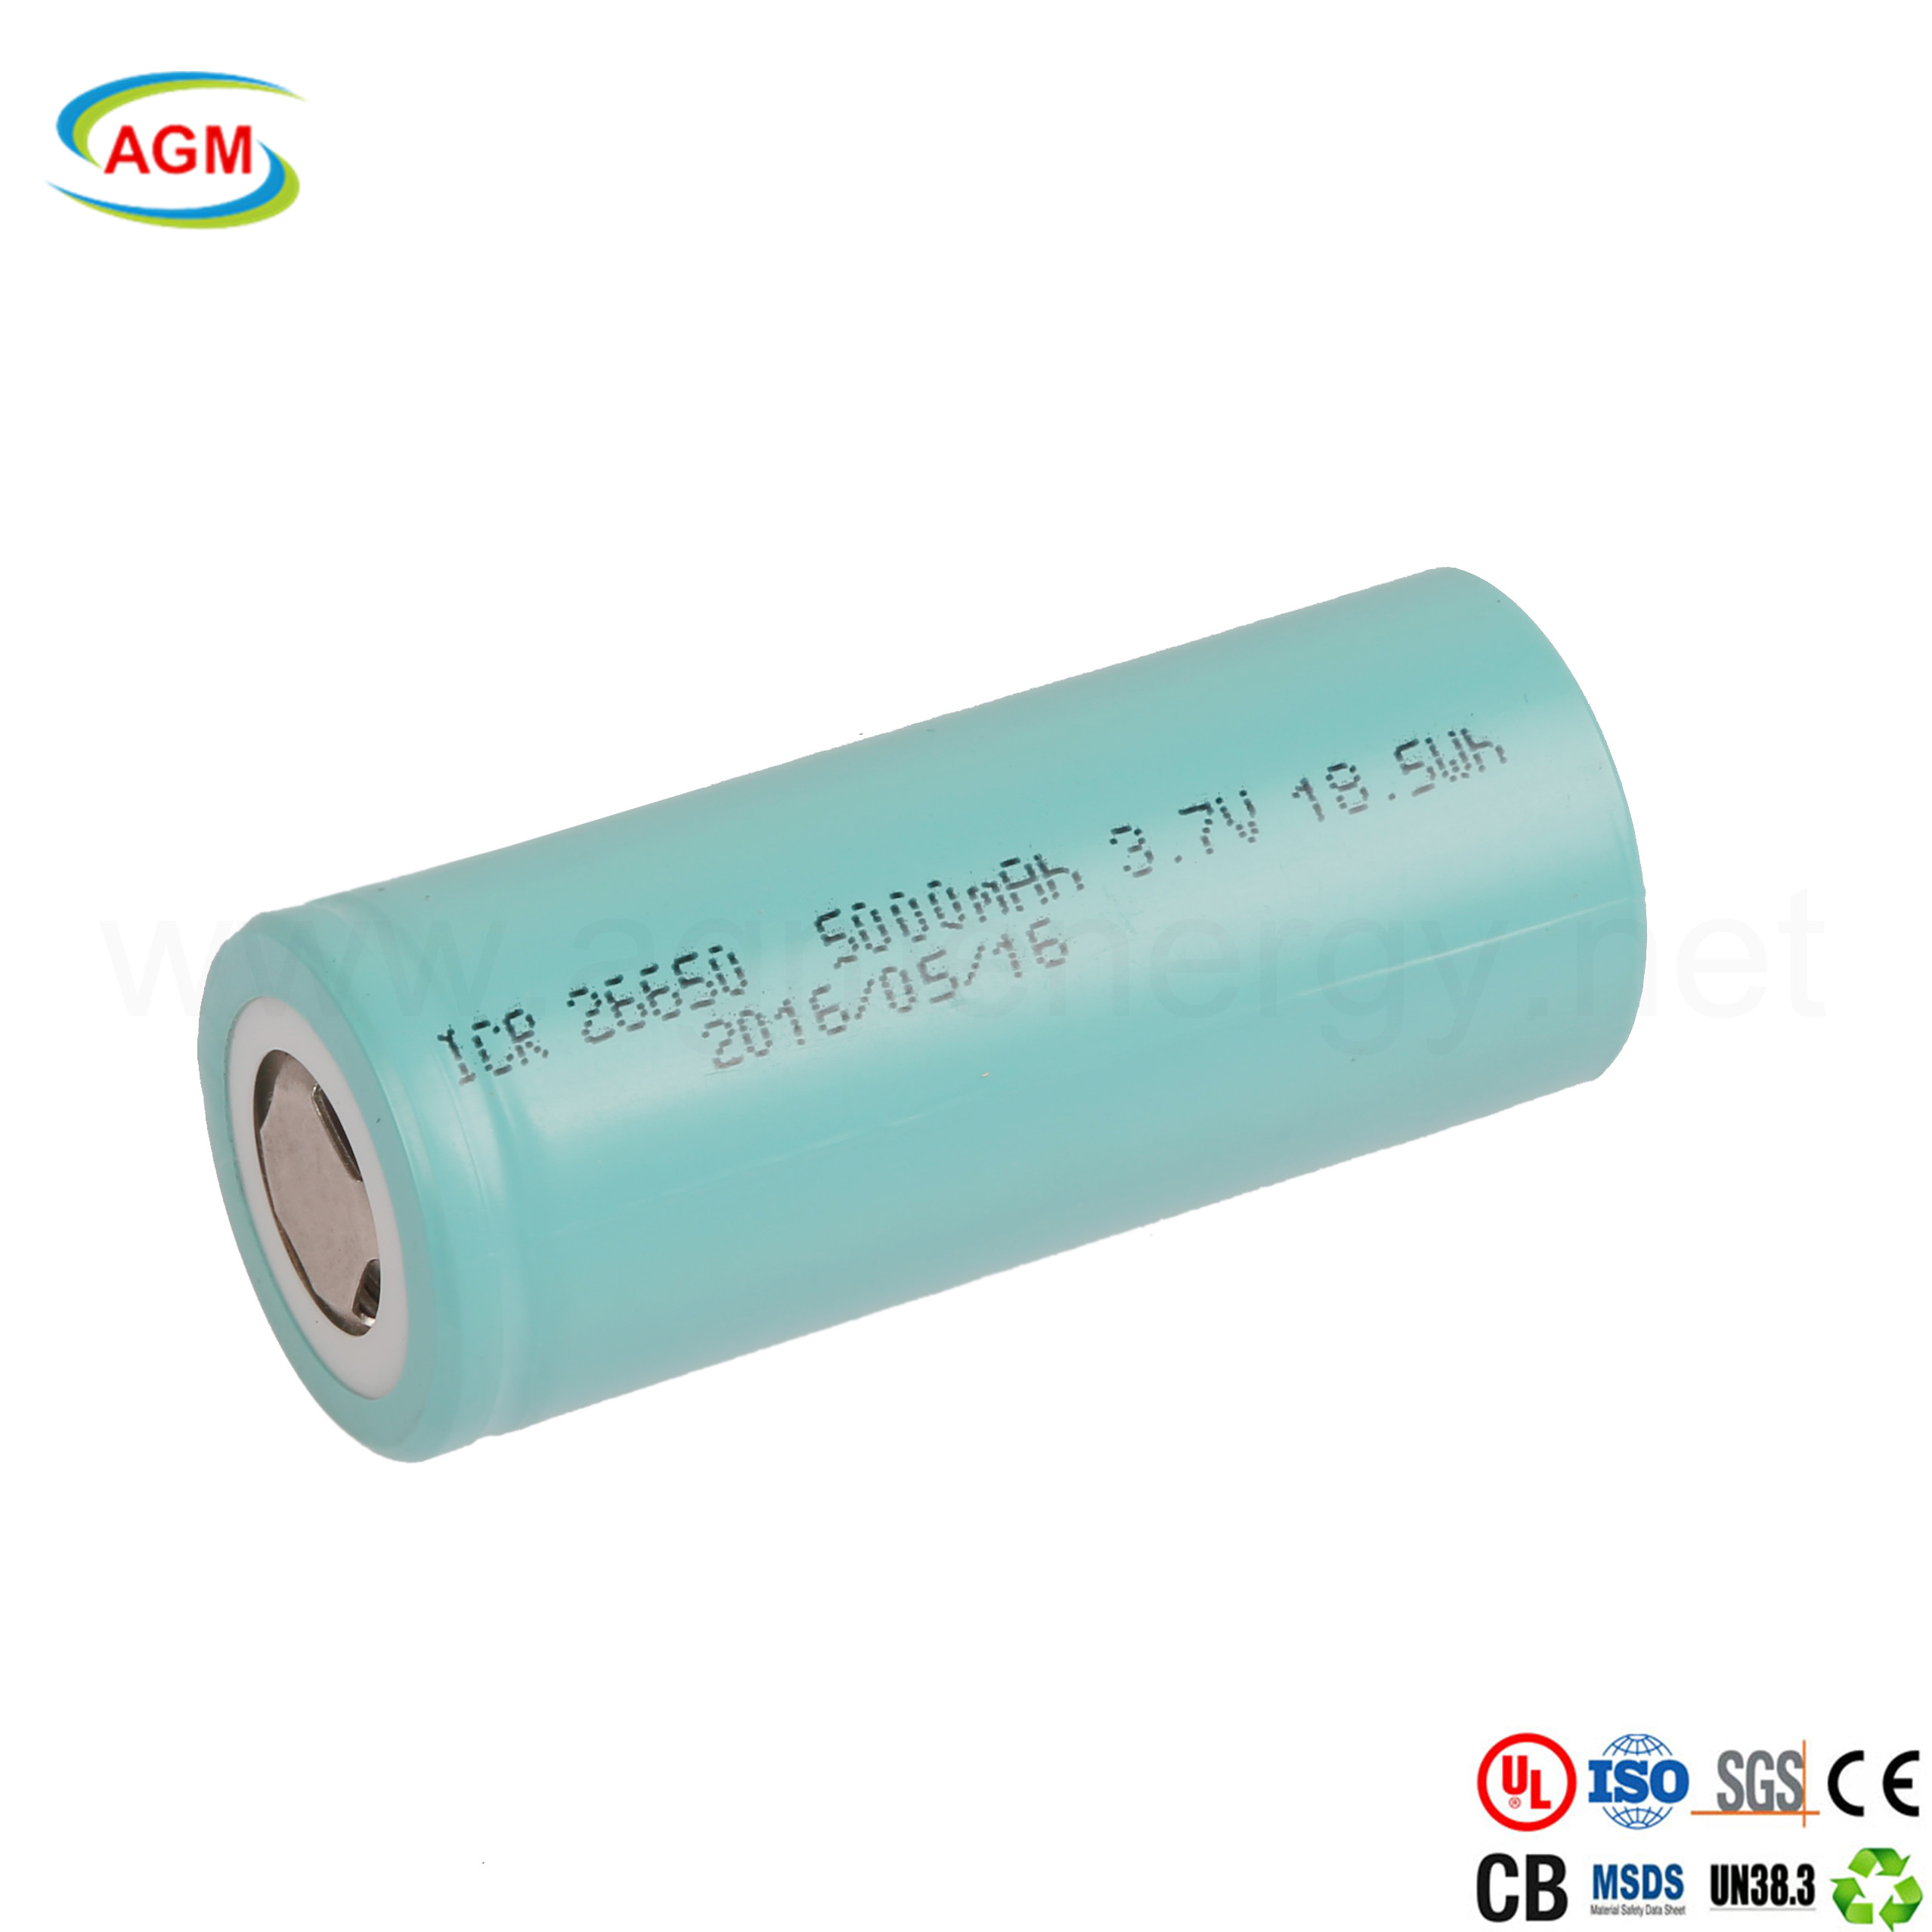 ICR 26650  5000mAh 3.7V 18.5Wh lithium-ion battery cell